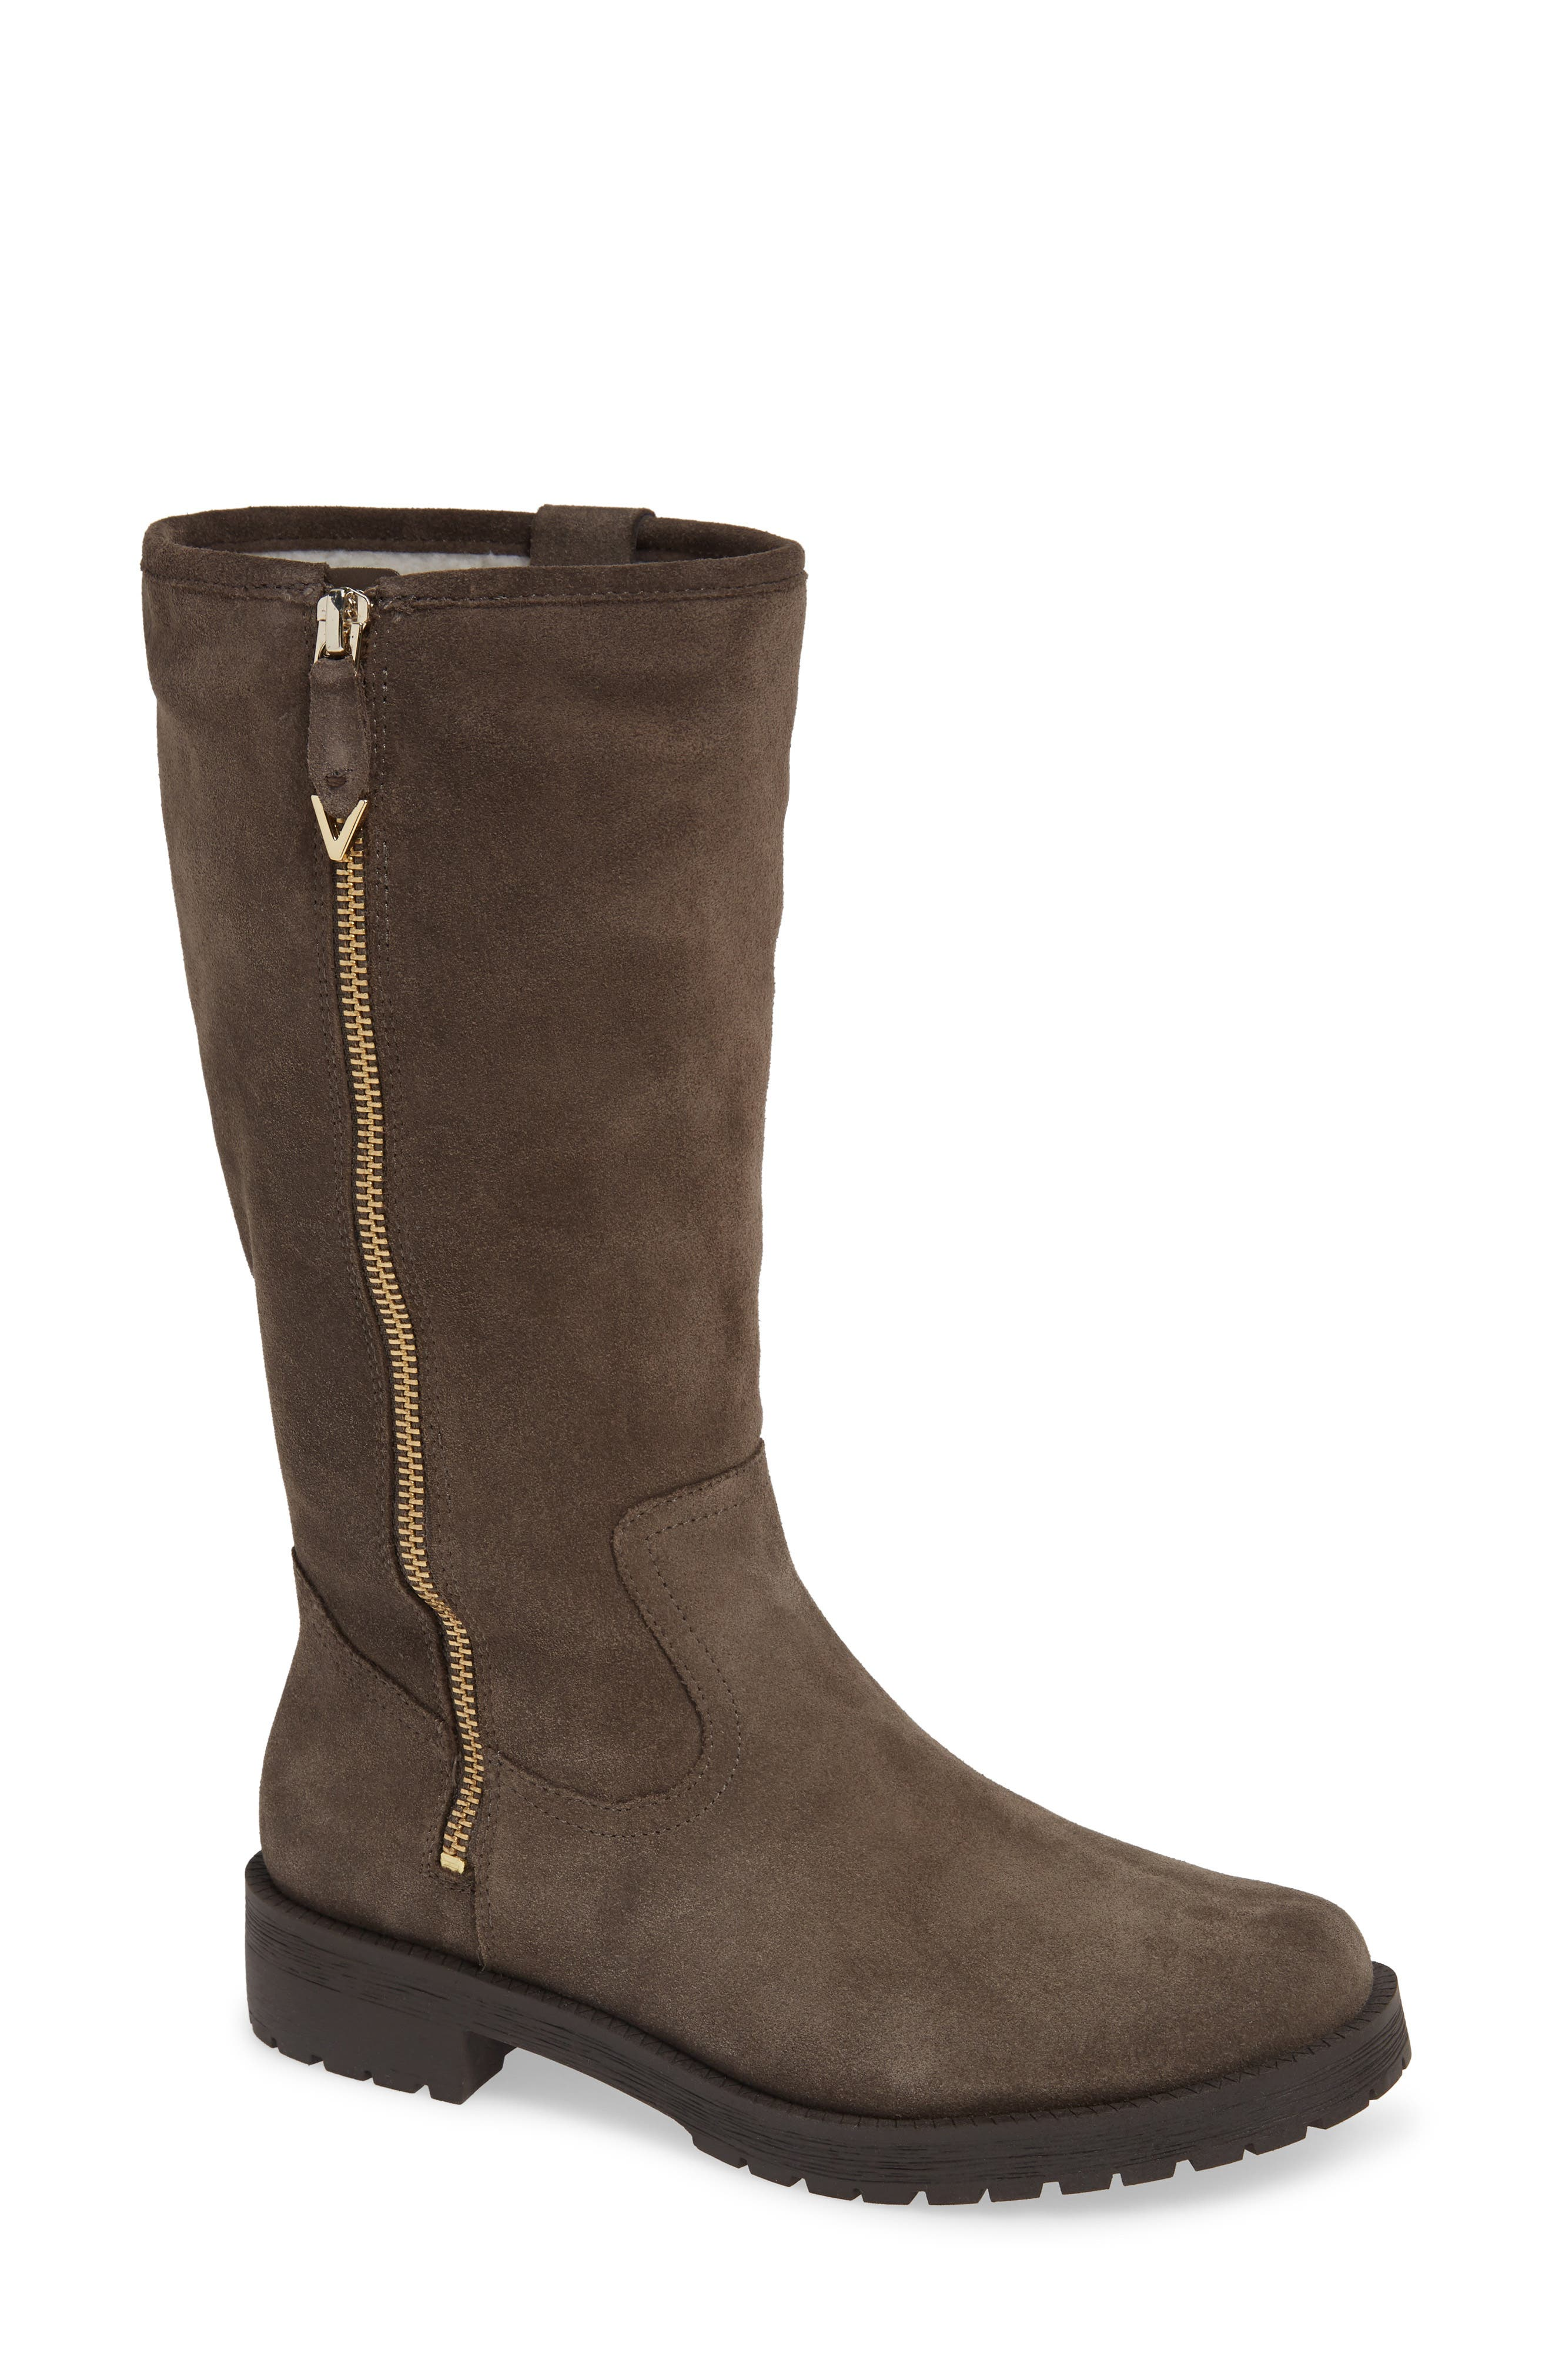 VIONIC, Mica Boot, Main thumbnail 1, color, GREIGE SUEDE